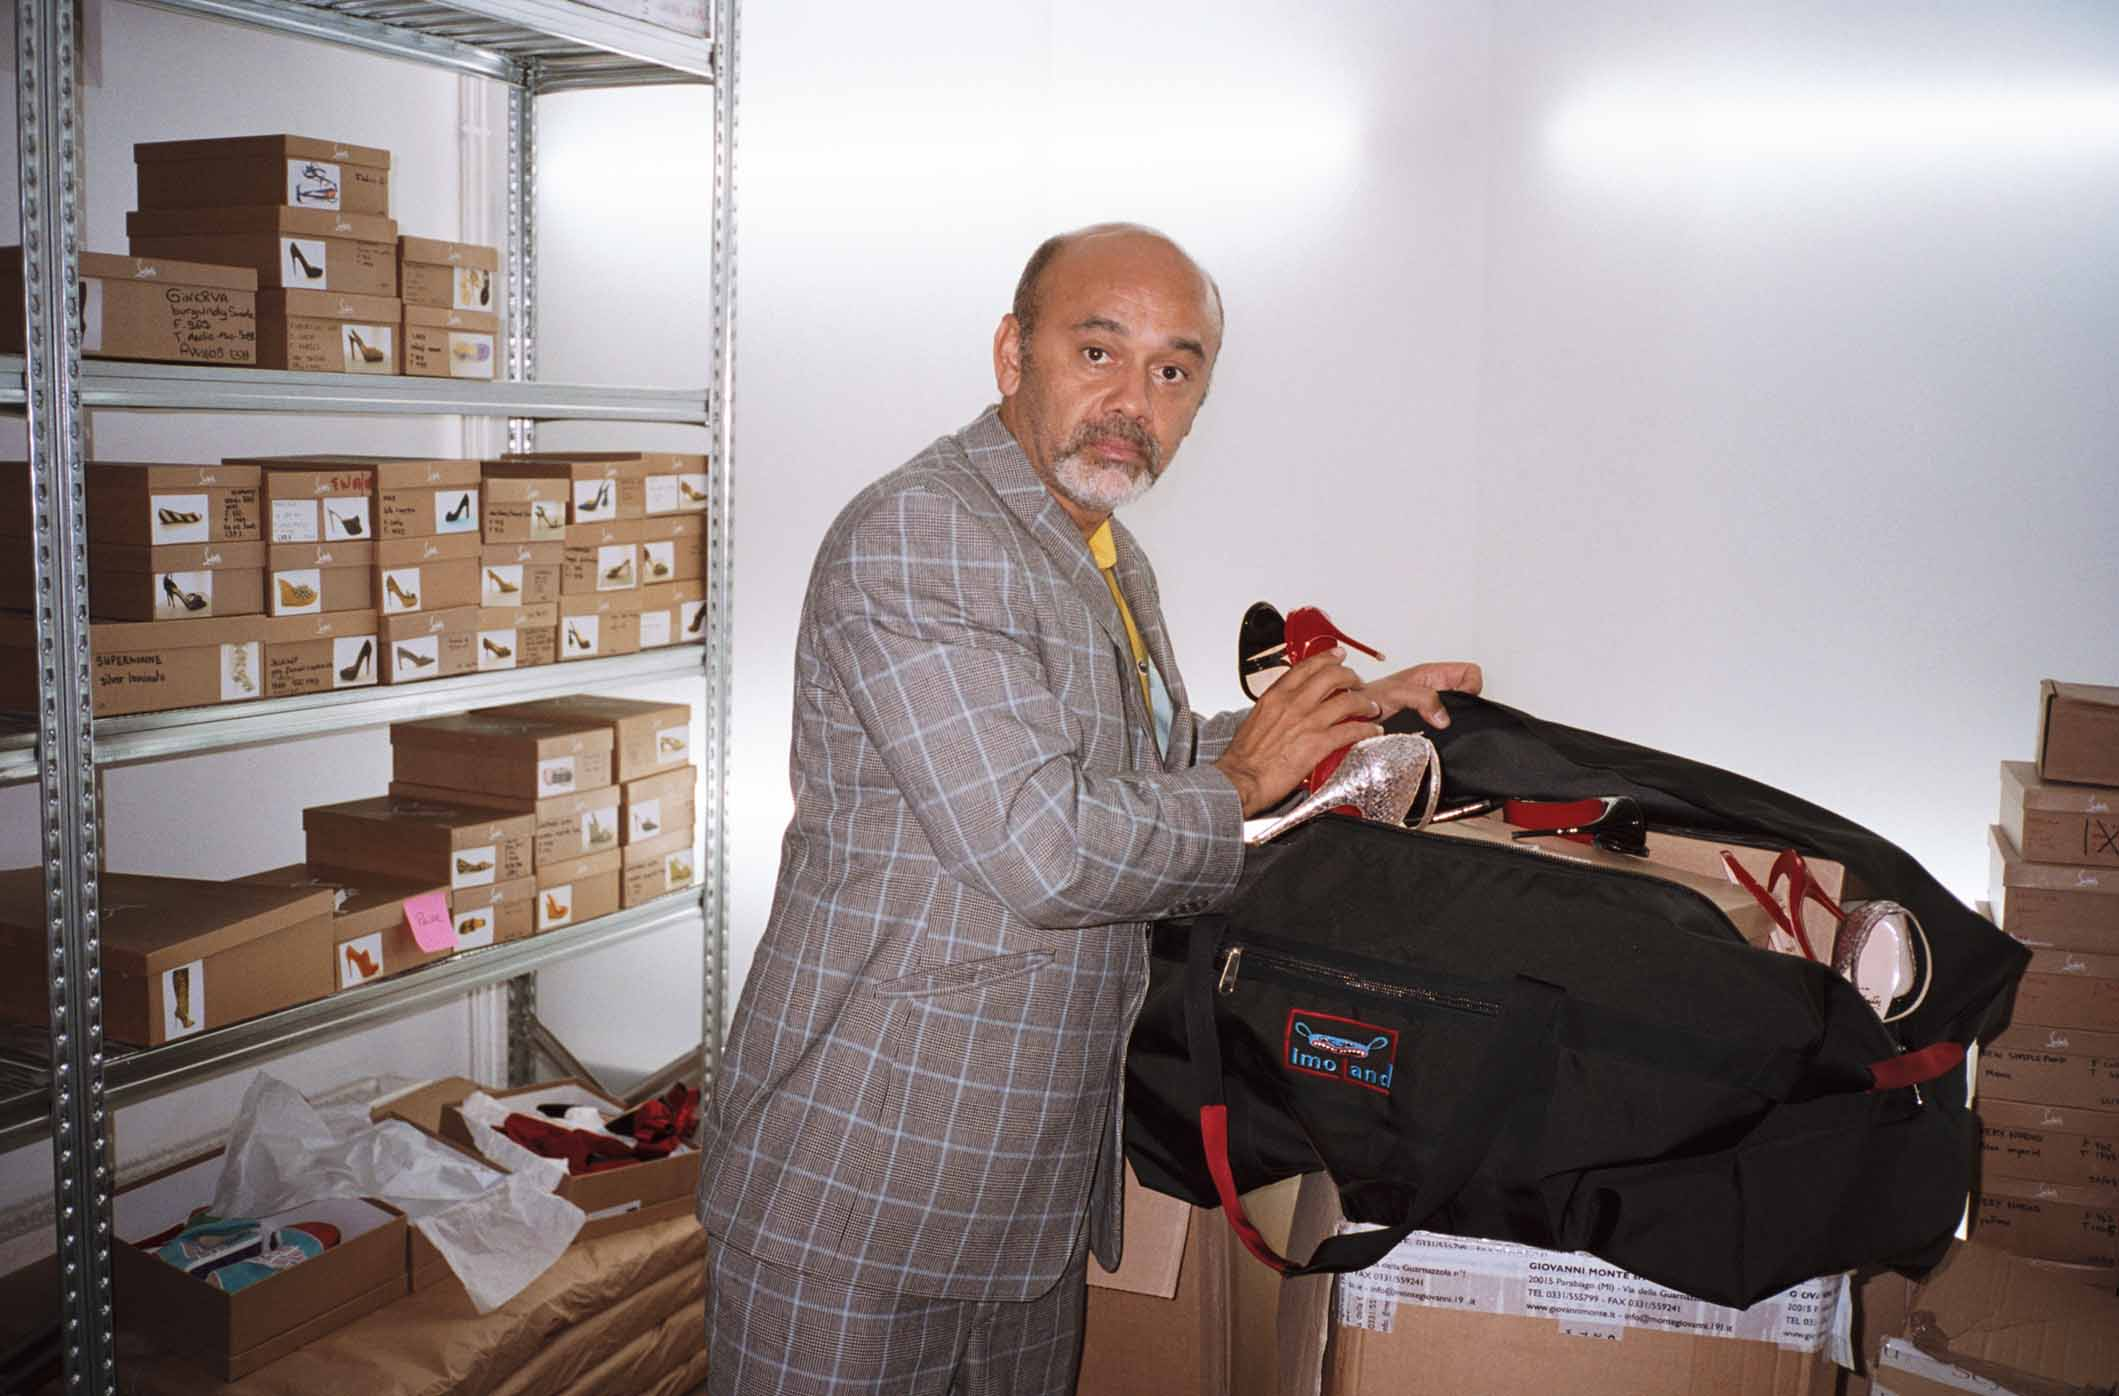 Christian Louboutin (the designer) in LimoLand - shot by Theo Wenner